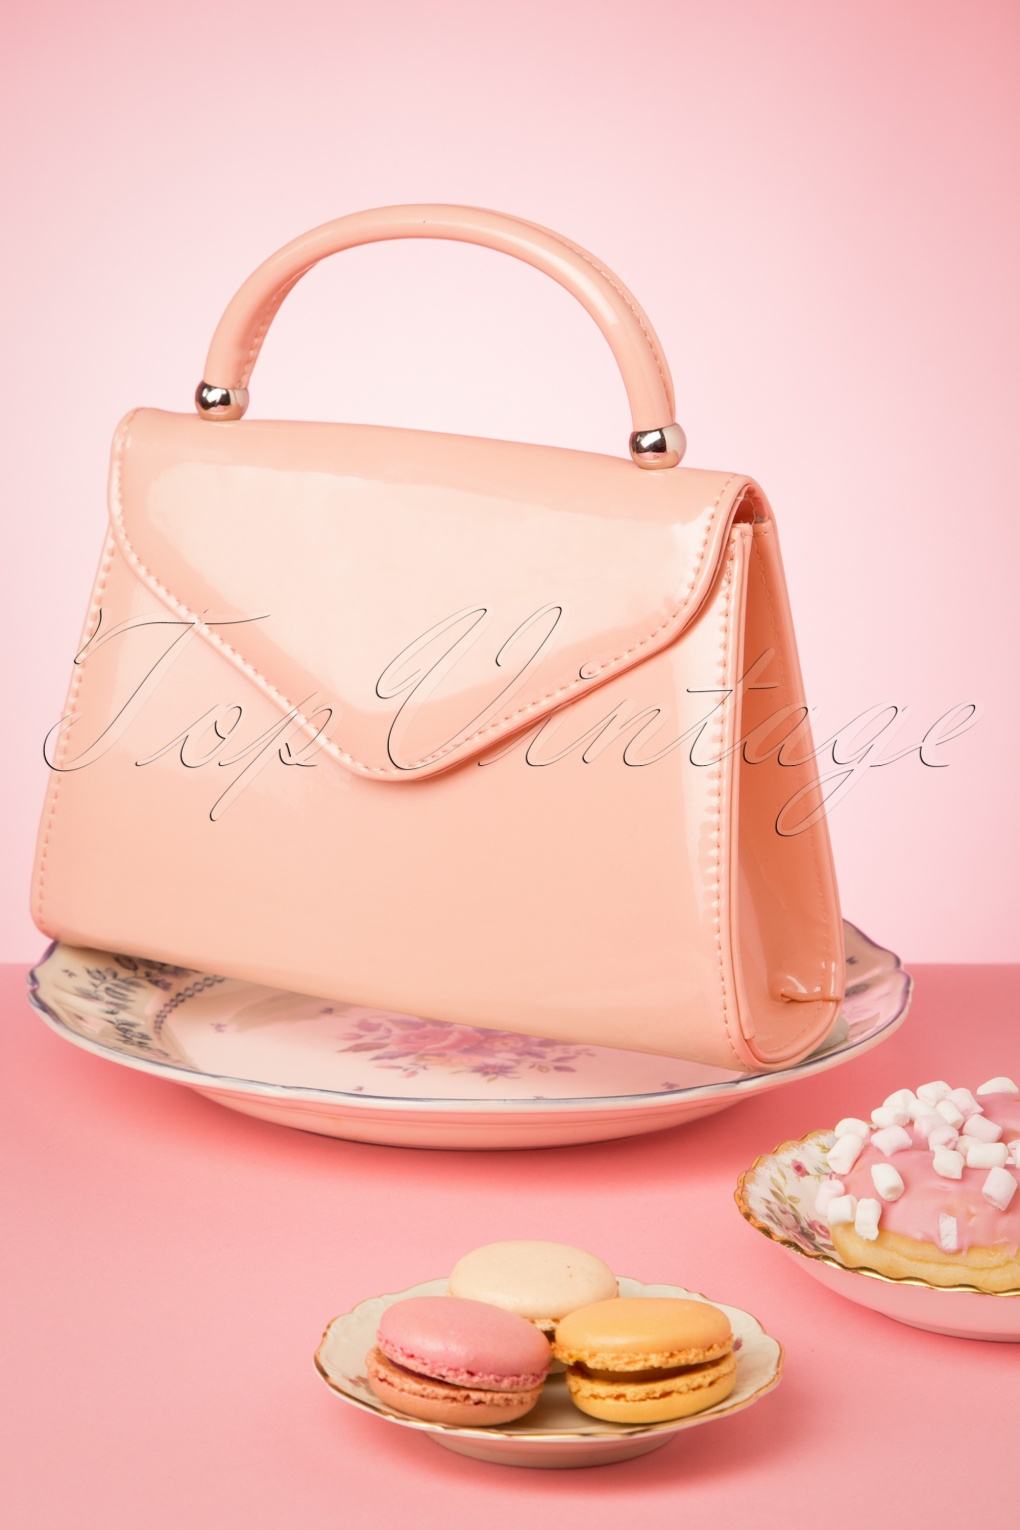 Vintage & Retro Handbags, Purses, Wallets, Bags 60s Lillian Lacquer Flap Bag in Blush Pink and Silver �23.79 AT vintagedancer.com